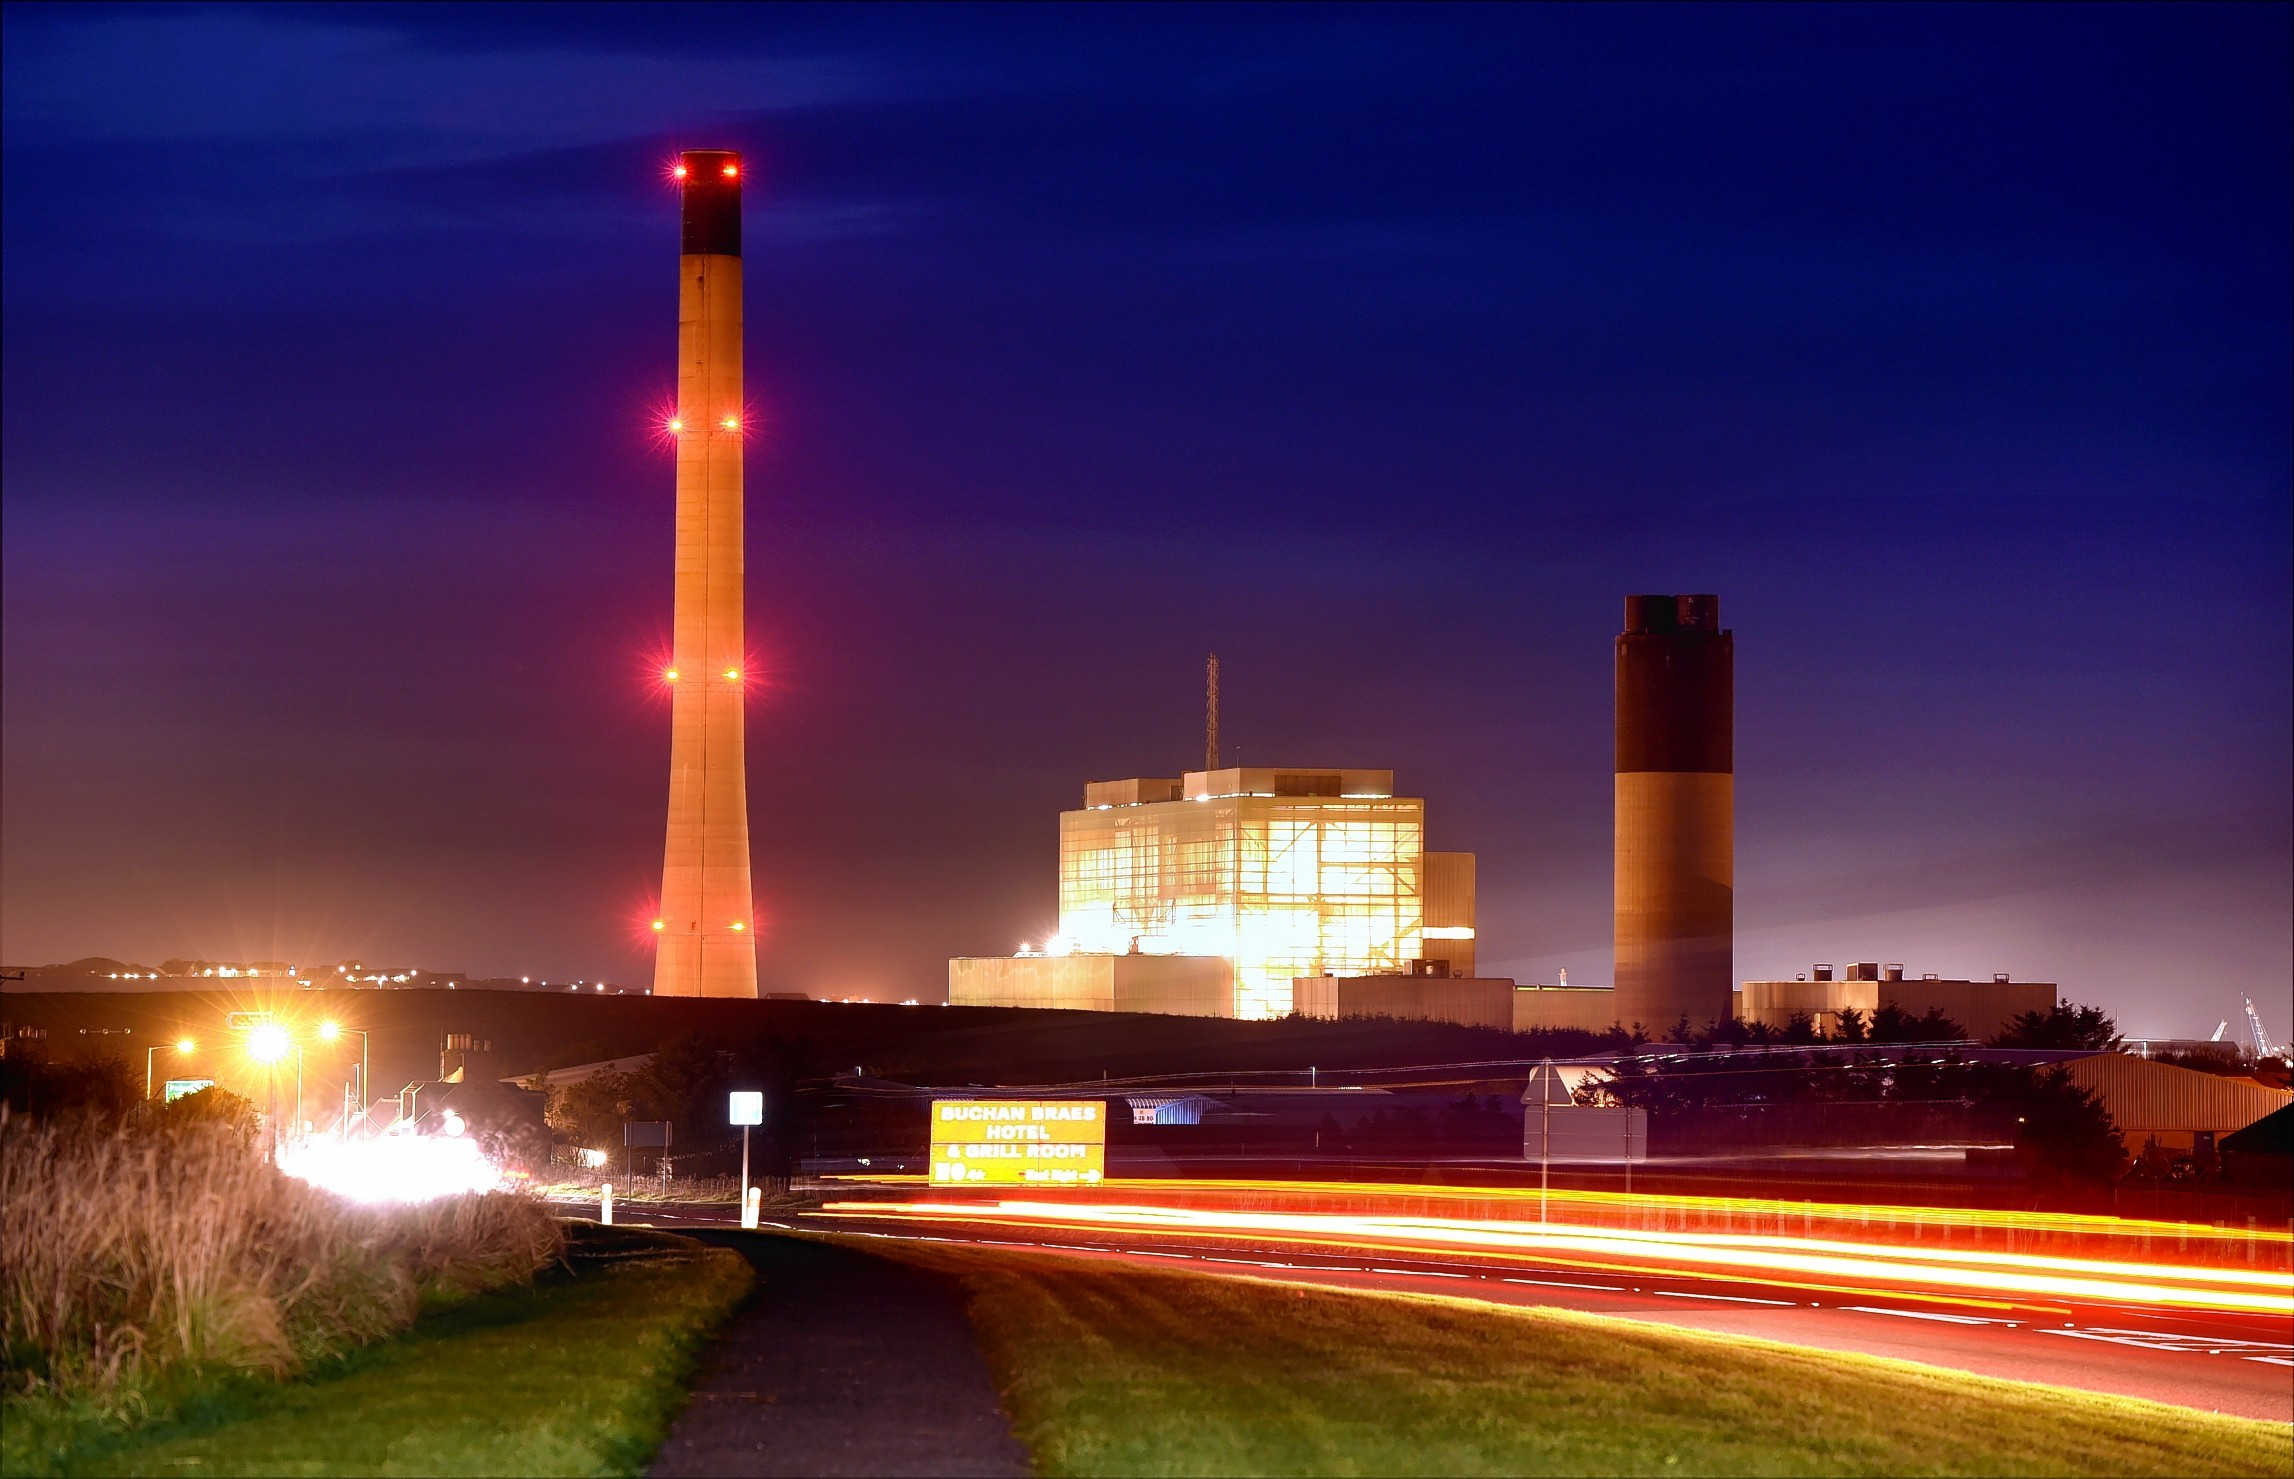 A planned CCS scheme at Peterhead Power Station was in the running for a UK Government funding competition, until the grant was withdrawn.